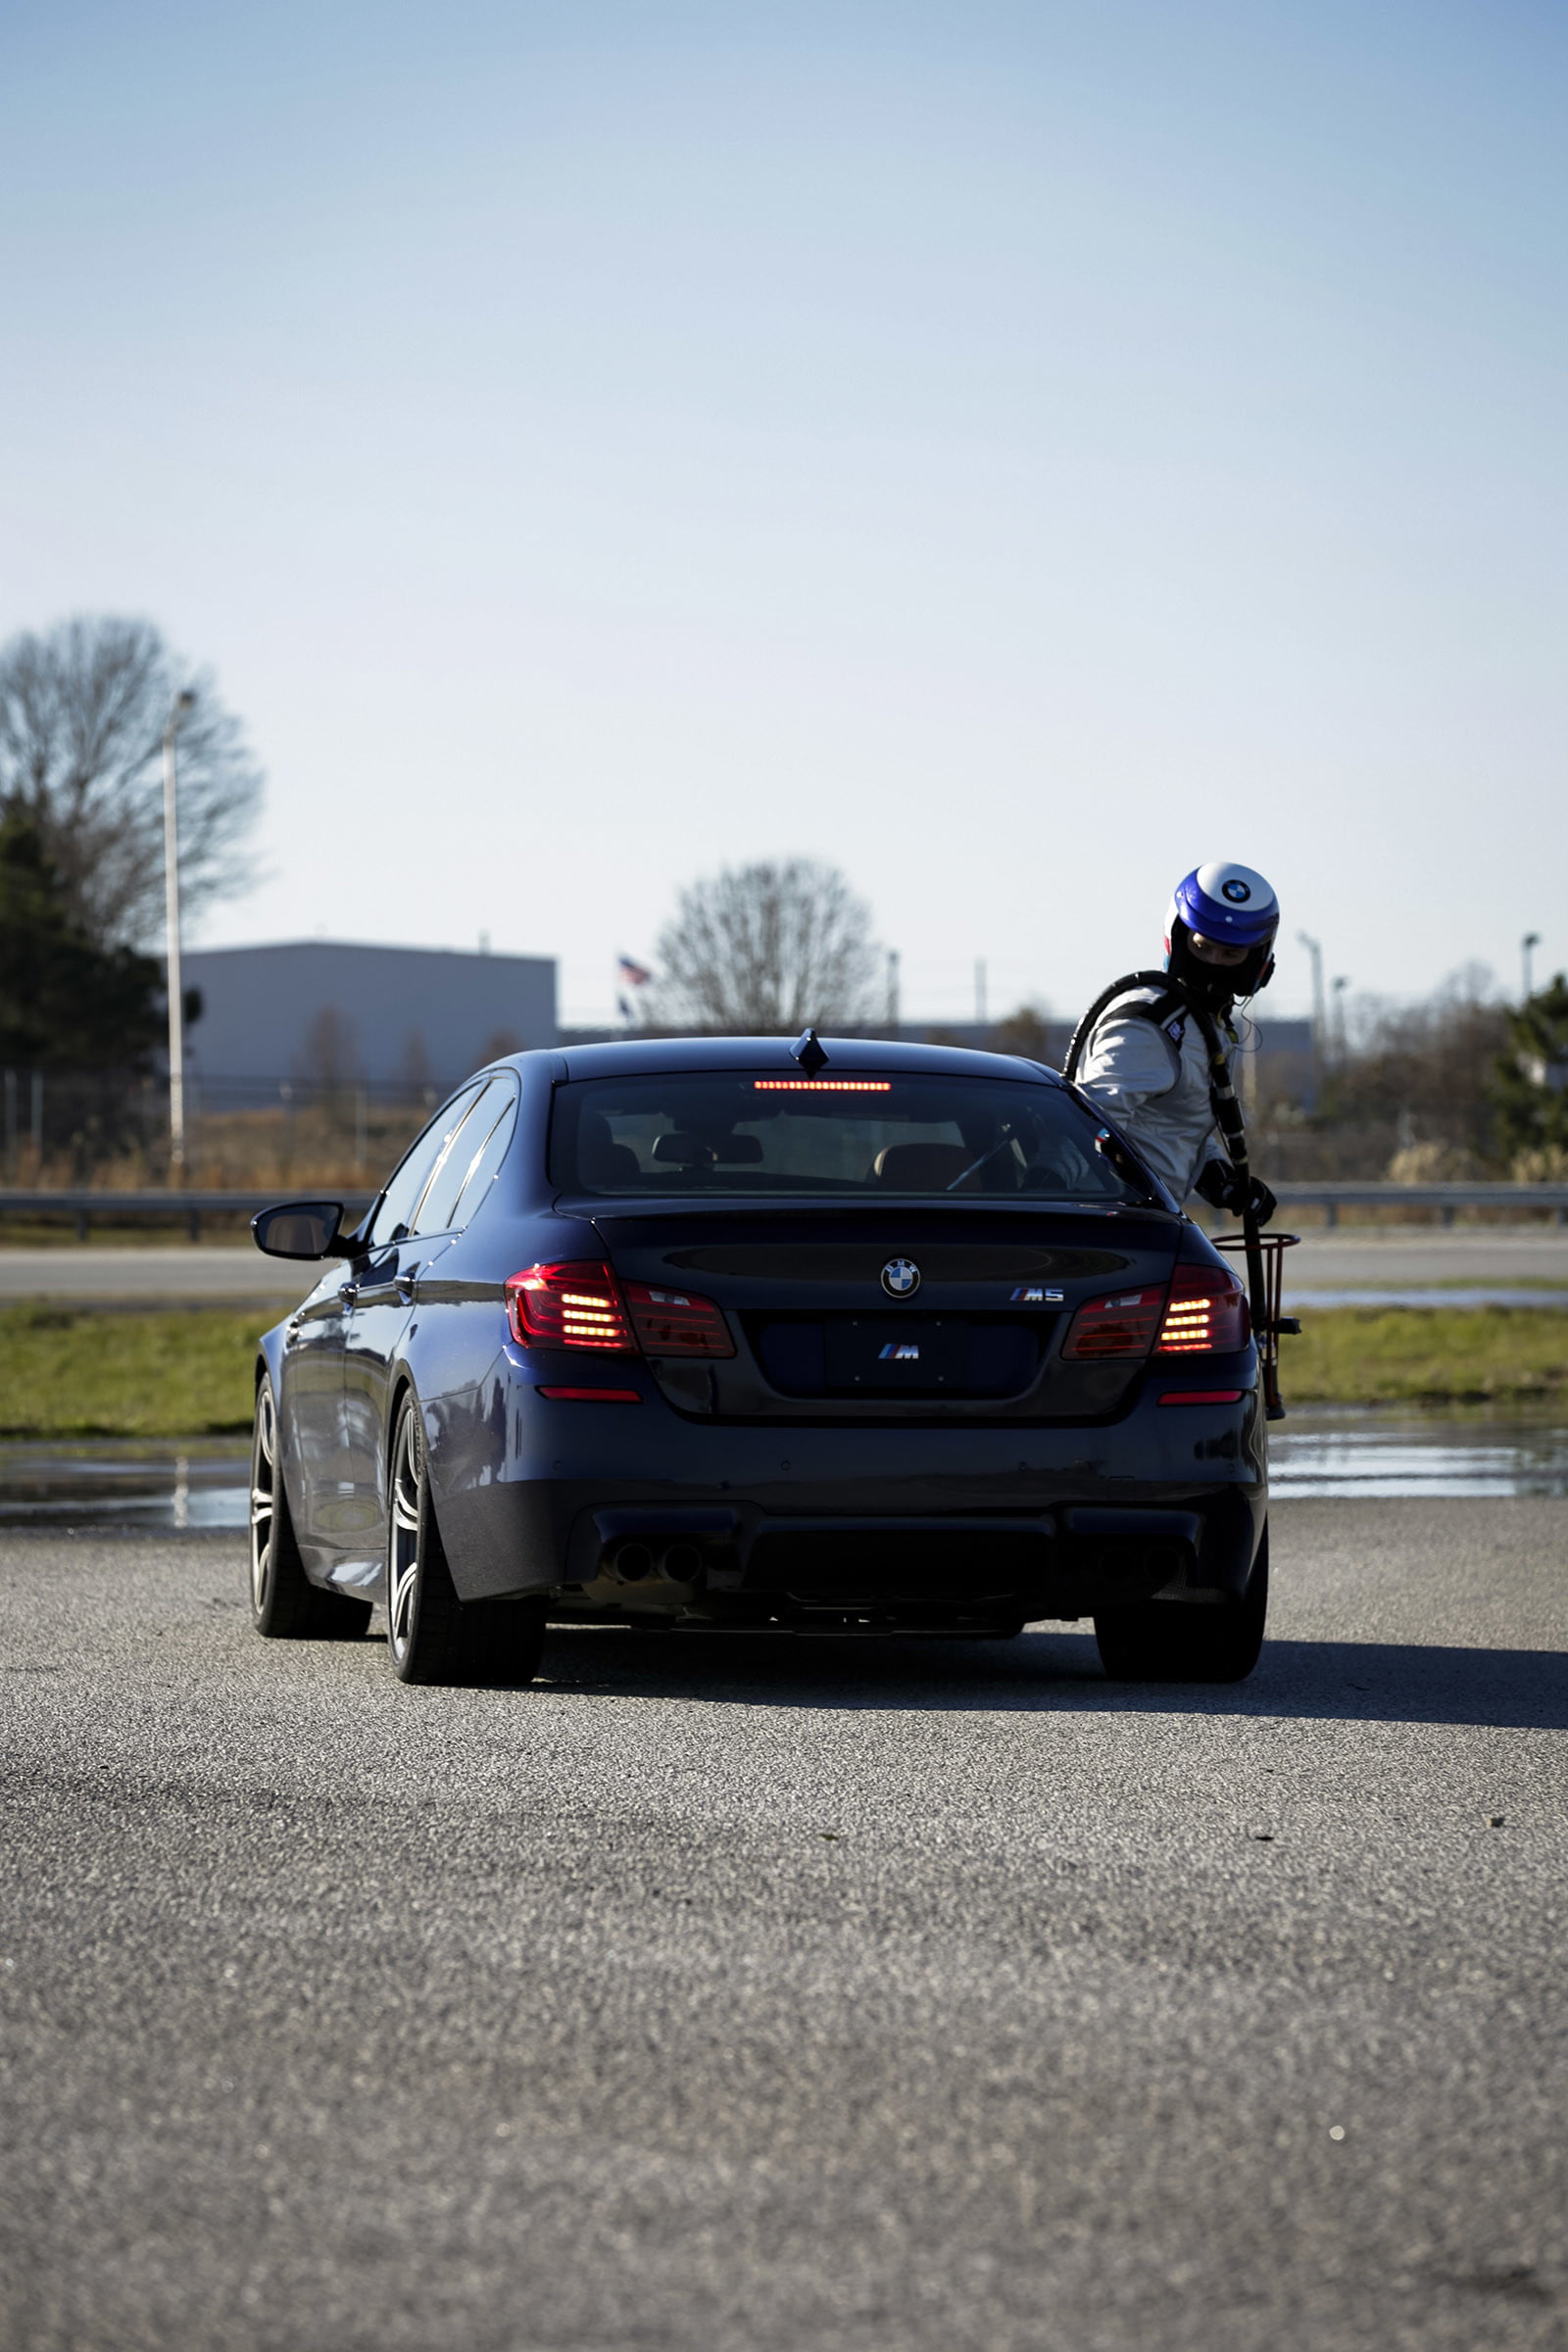 bmw sets two guinness world records drifting sideways for 2325 miles record  longest drift with 2018 m5 1